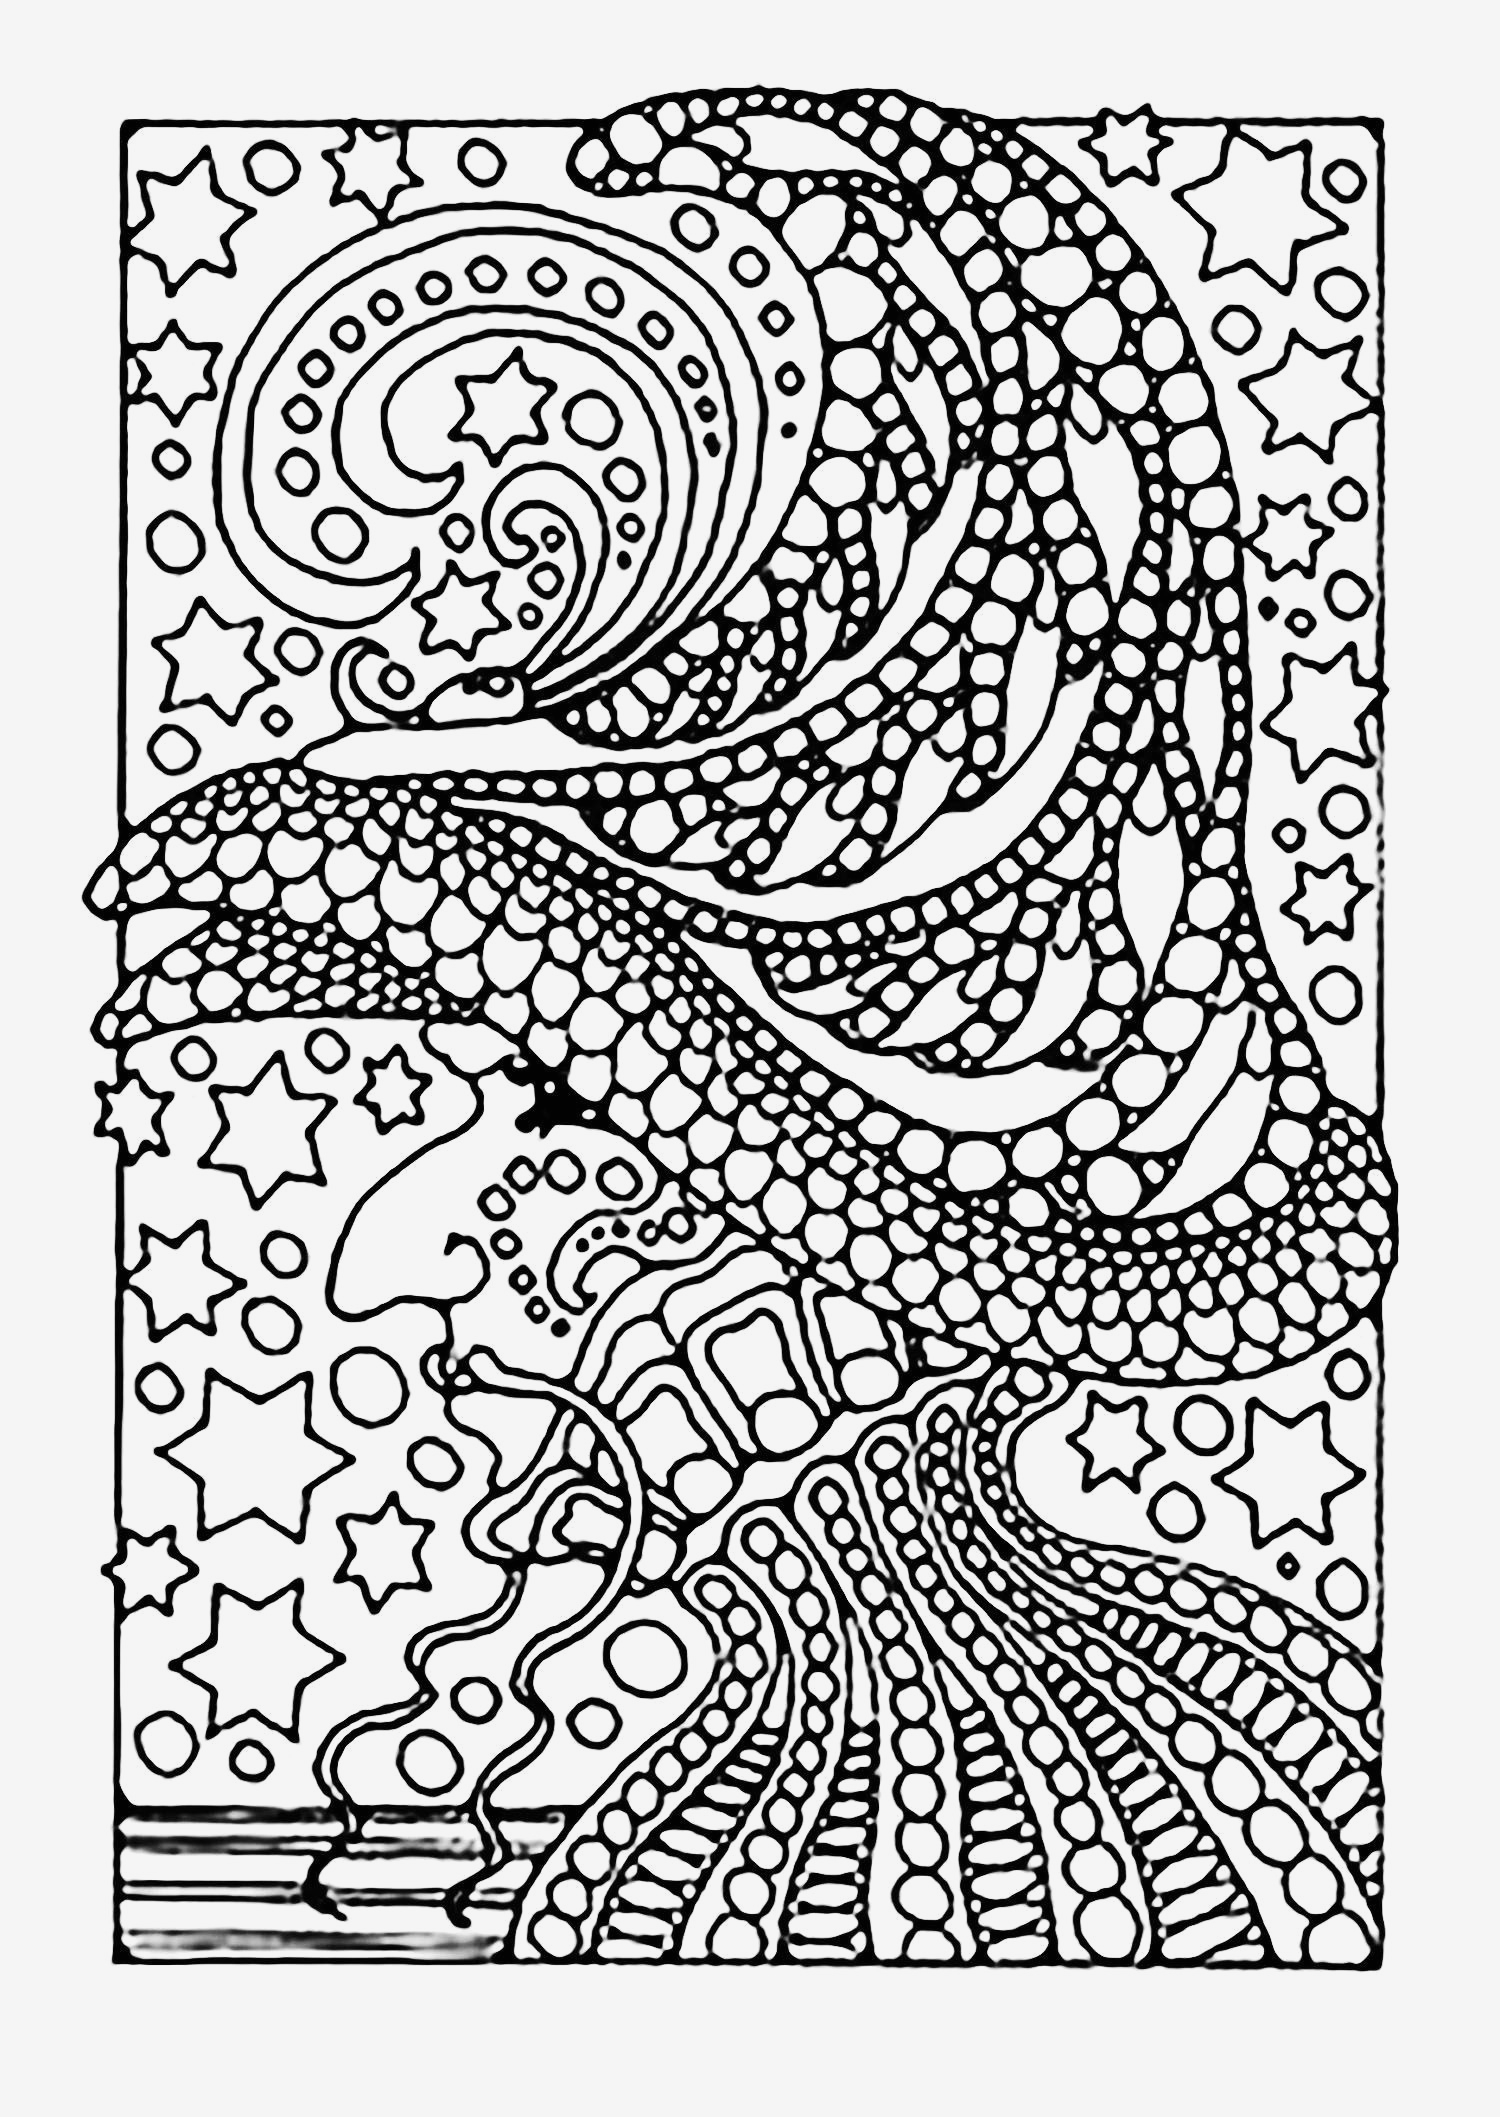 How to Make Coloring Pages  to Print 20k - Free For Children